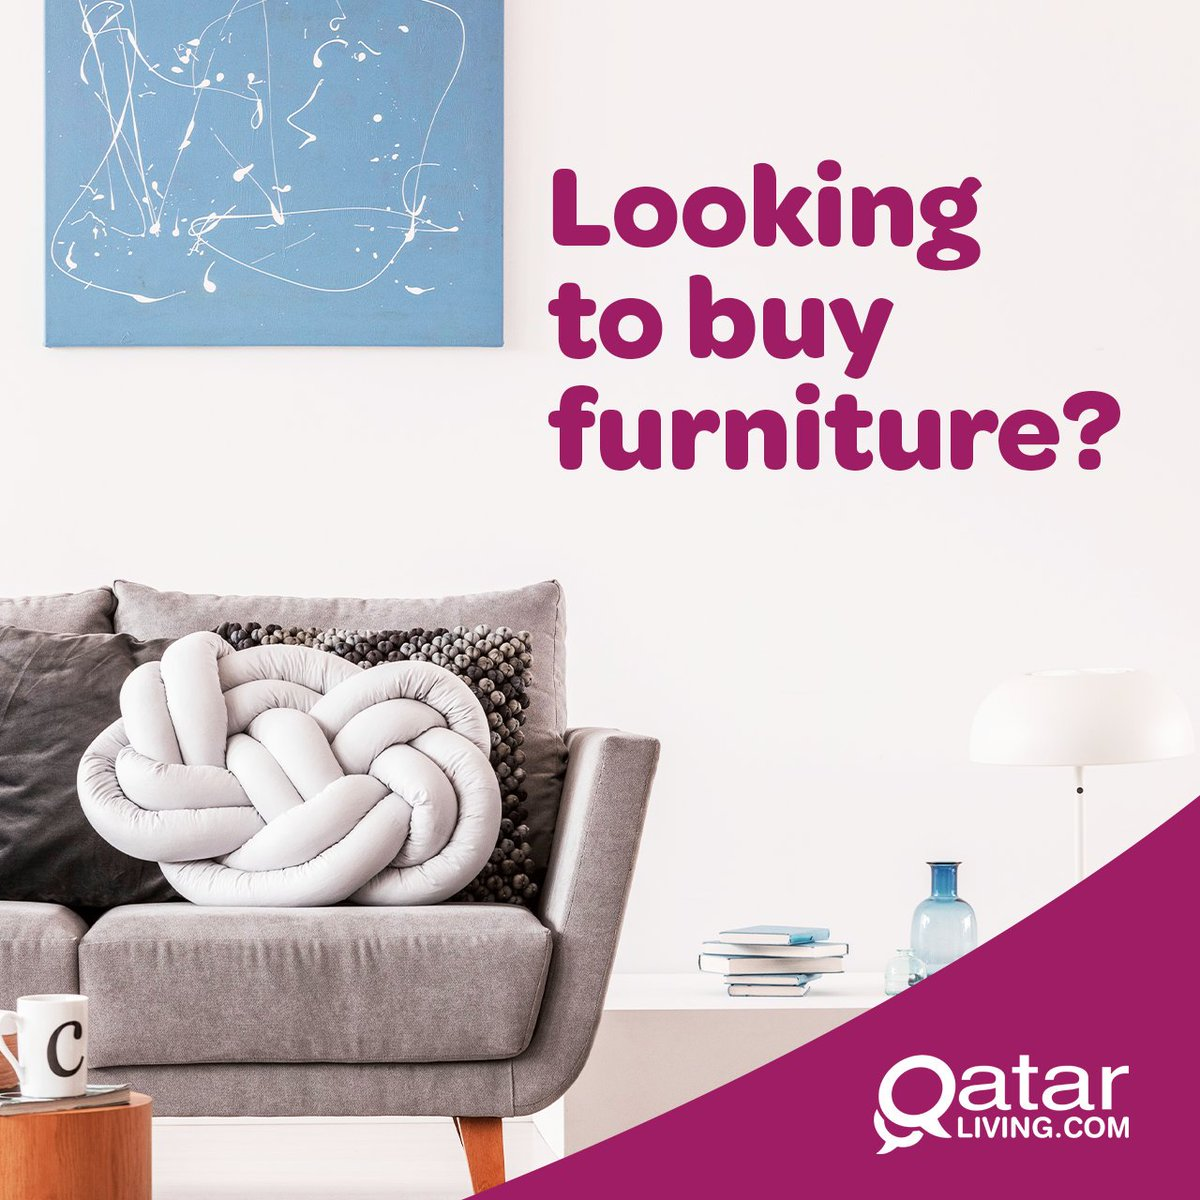 Used Qatar Living Furniture